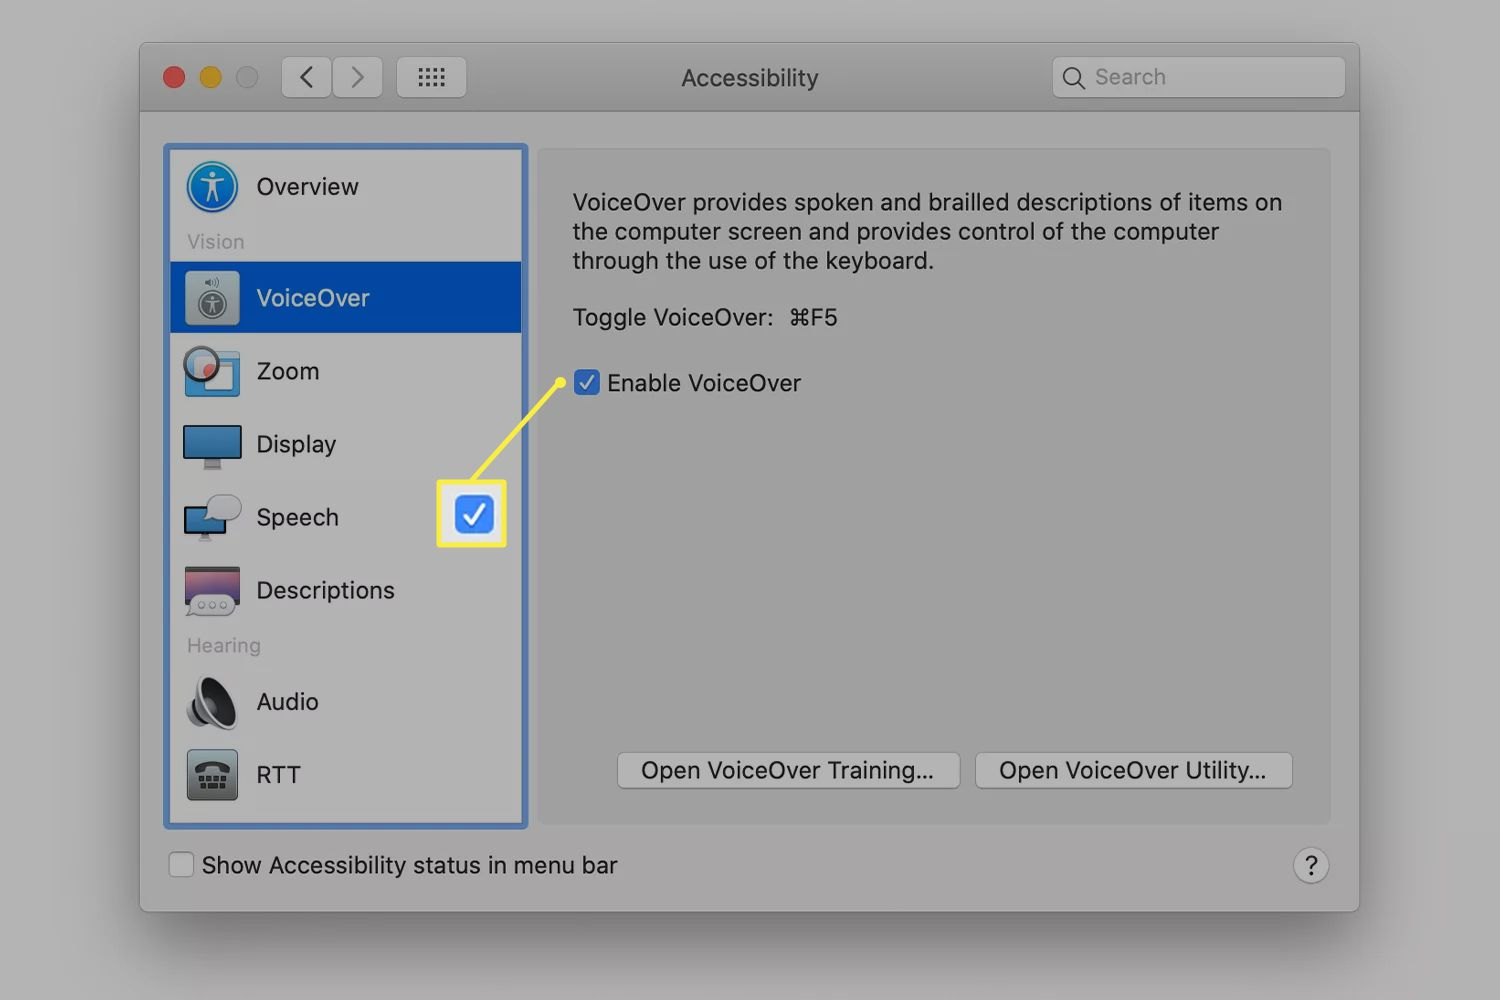 The Enable VoiceOver checkbox from macOS Accessibility settings